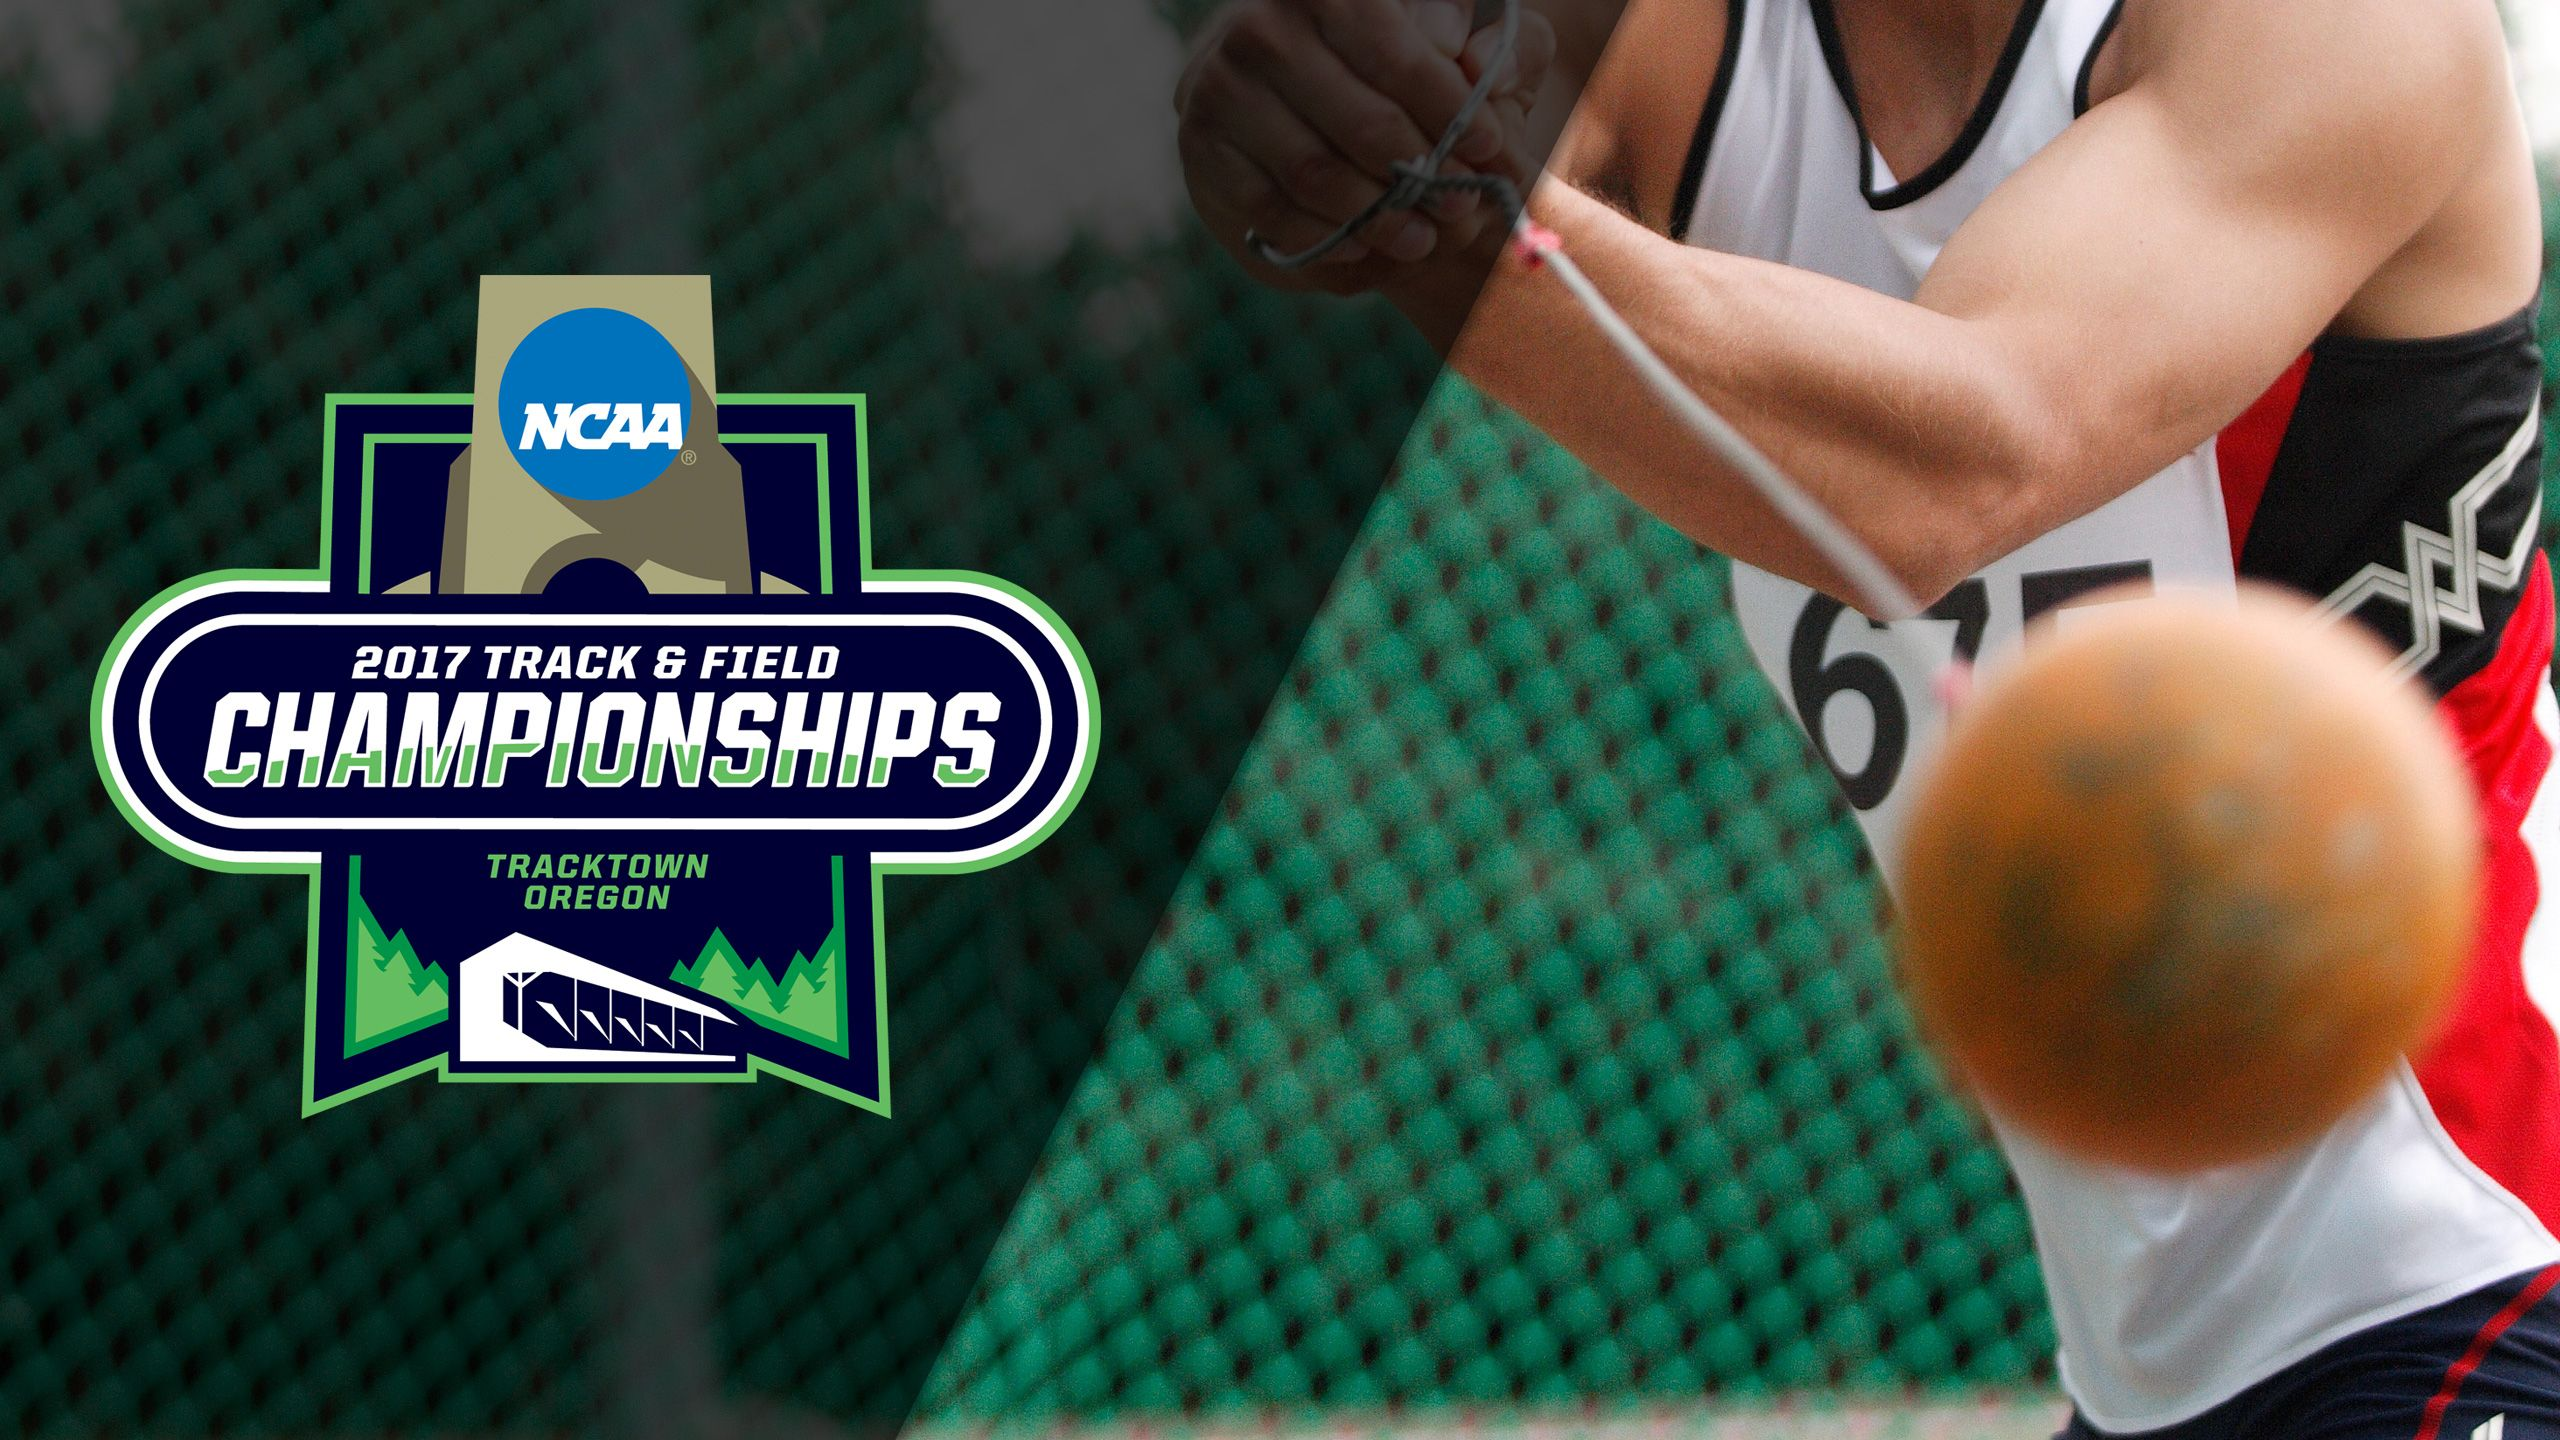 NCAA Track & Field Outdoor Championships - Men's Hammer Throw Final